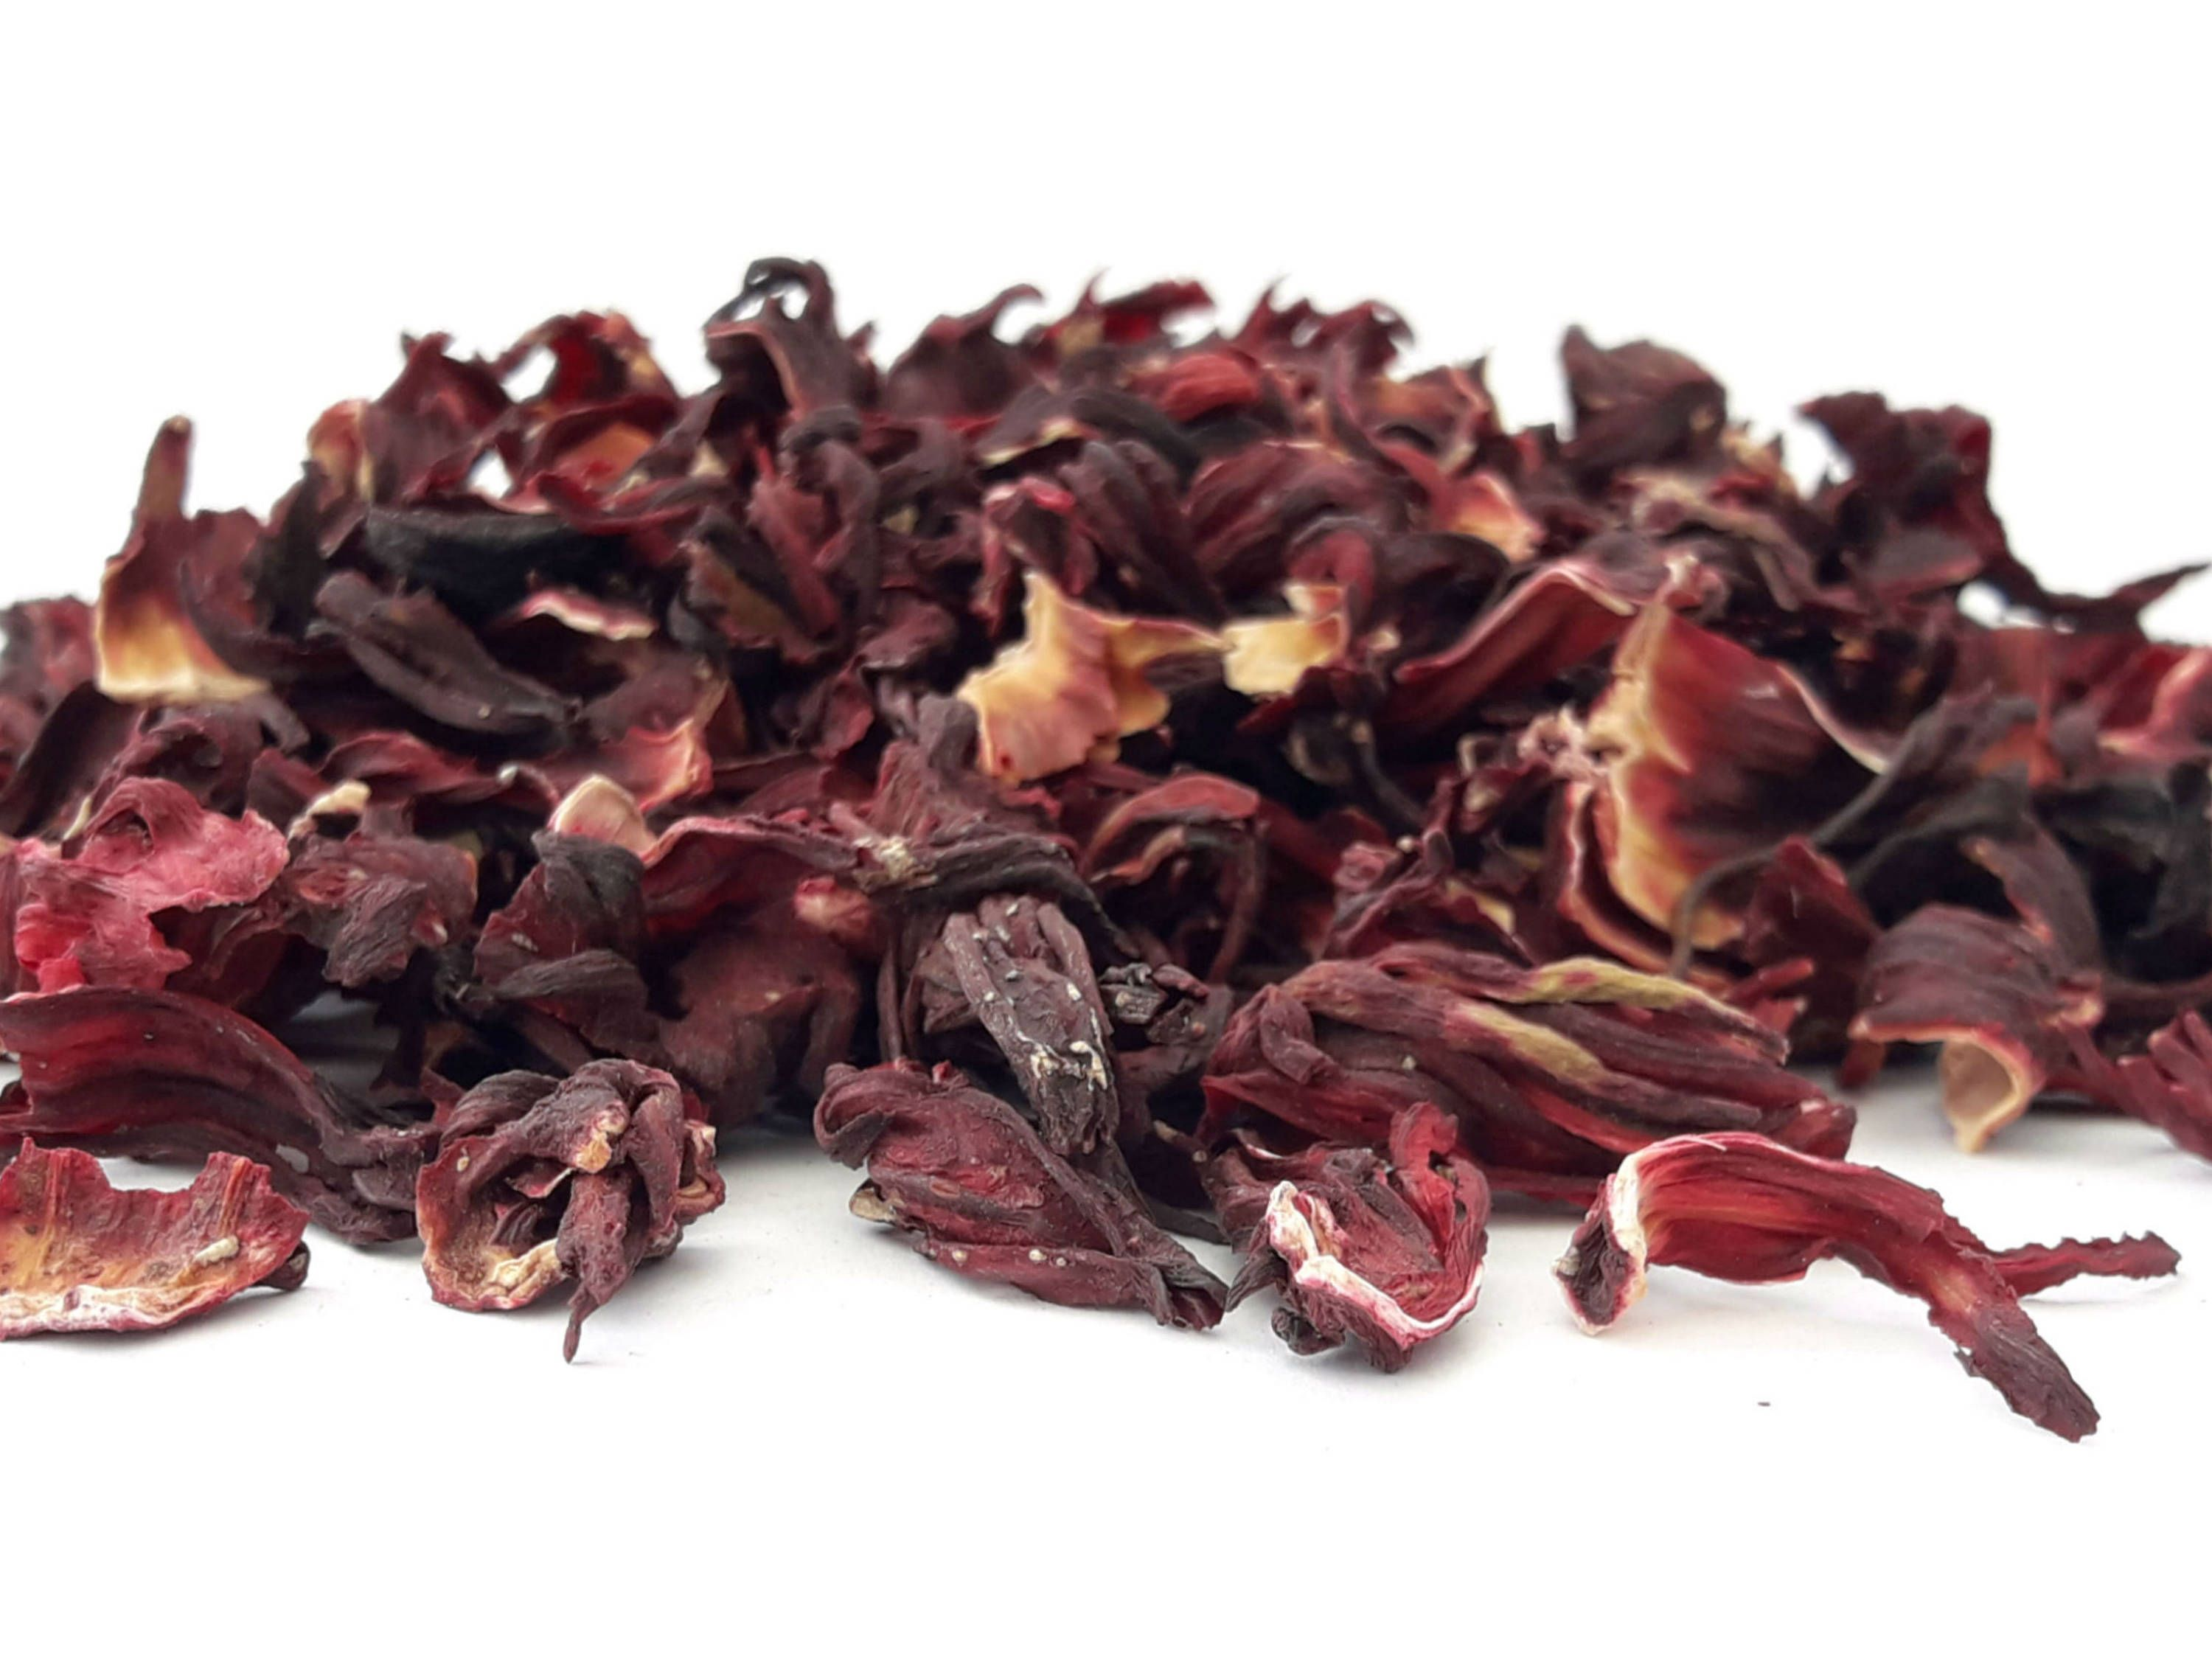 Just In Dried Hibiscus Flowers Natural Colorant Soap Bath Bomb Craft Supplies Soap Colora Dried Hibiscus Flowers Hibiscus Flowers Biodegradable Products